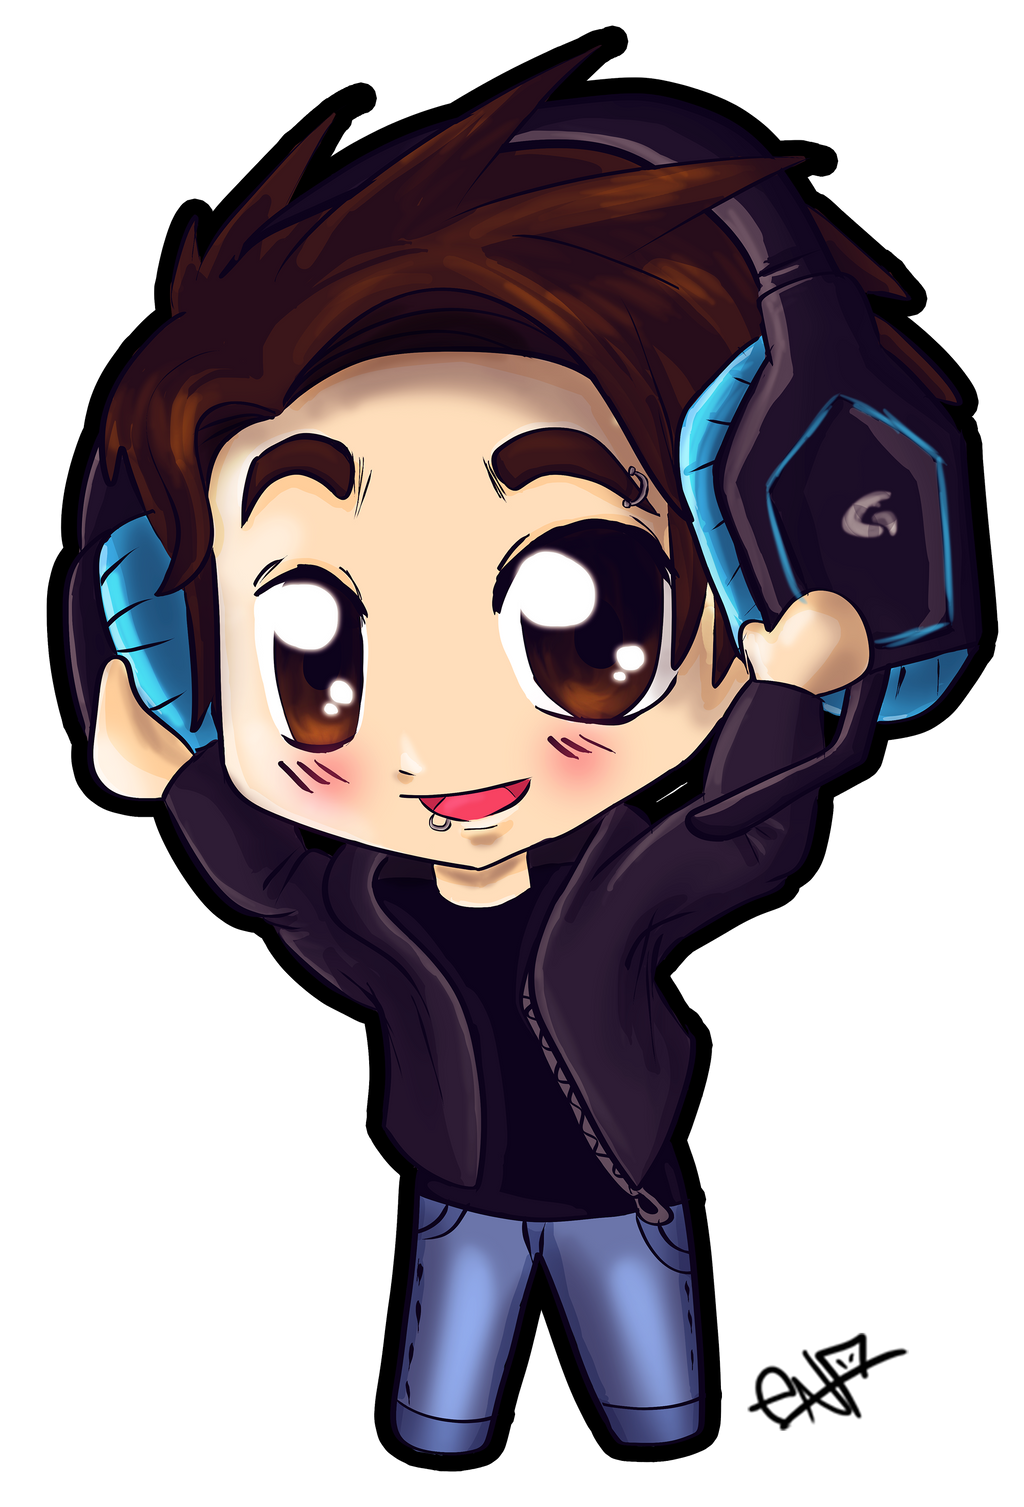 Chibi boy with headphones by Ena-the-original on DeviantArt